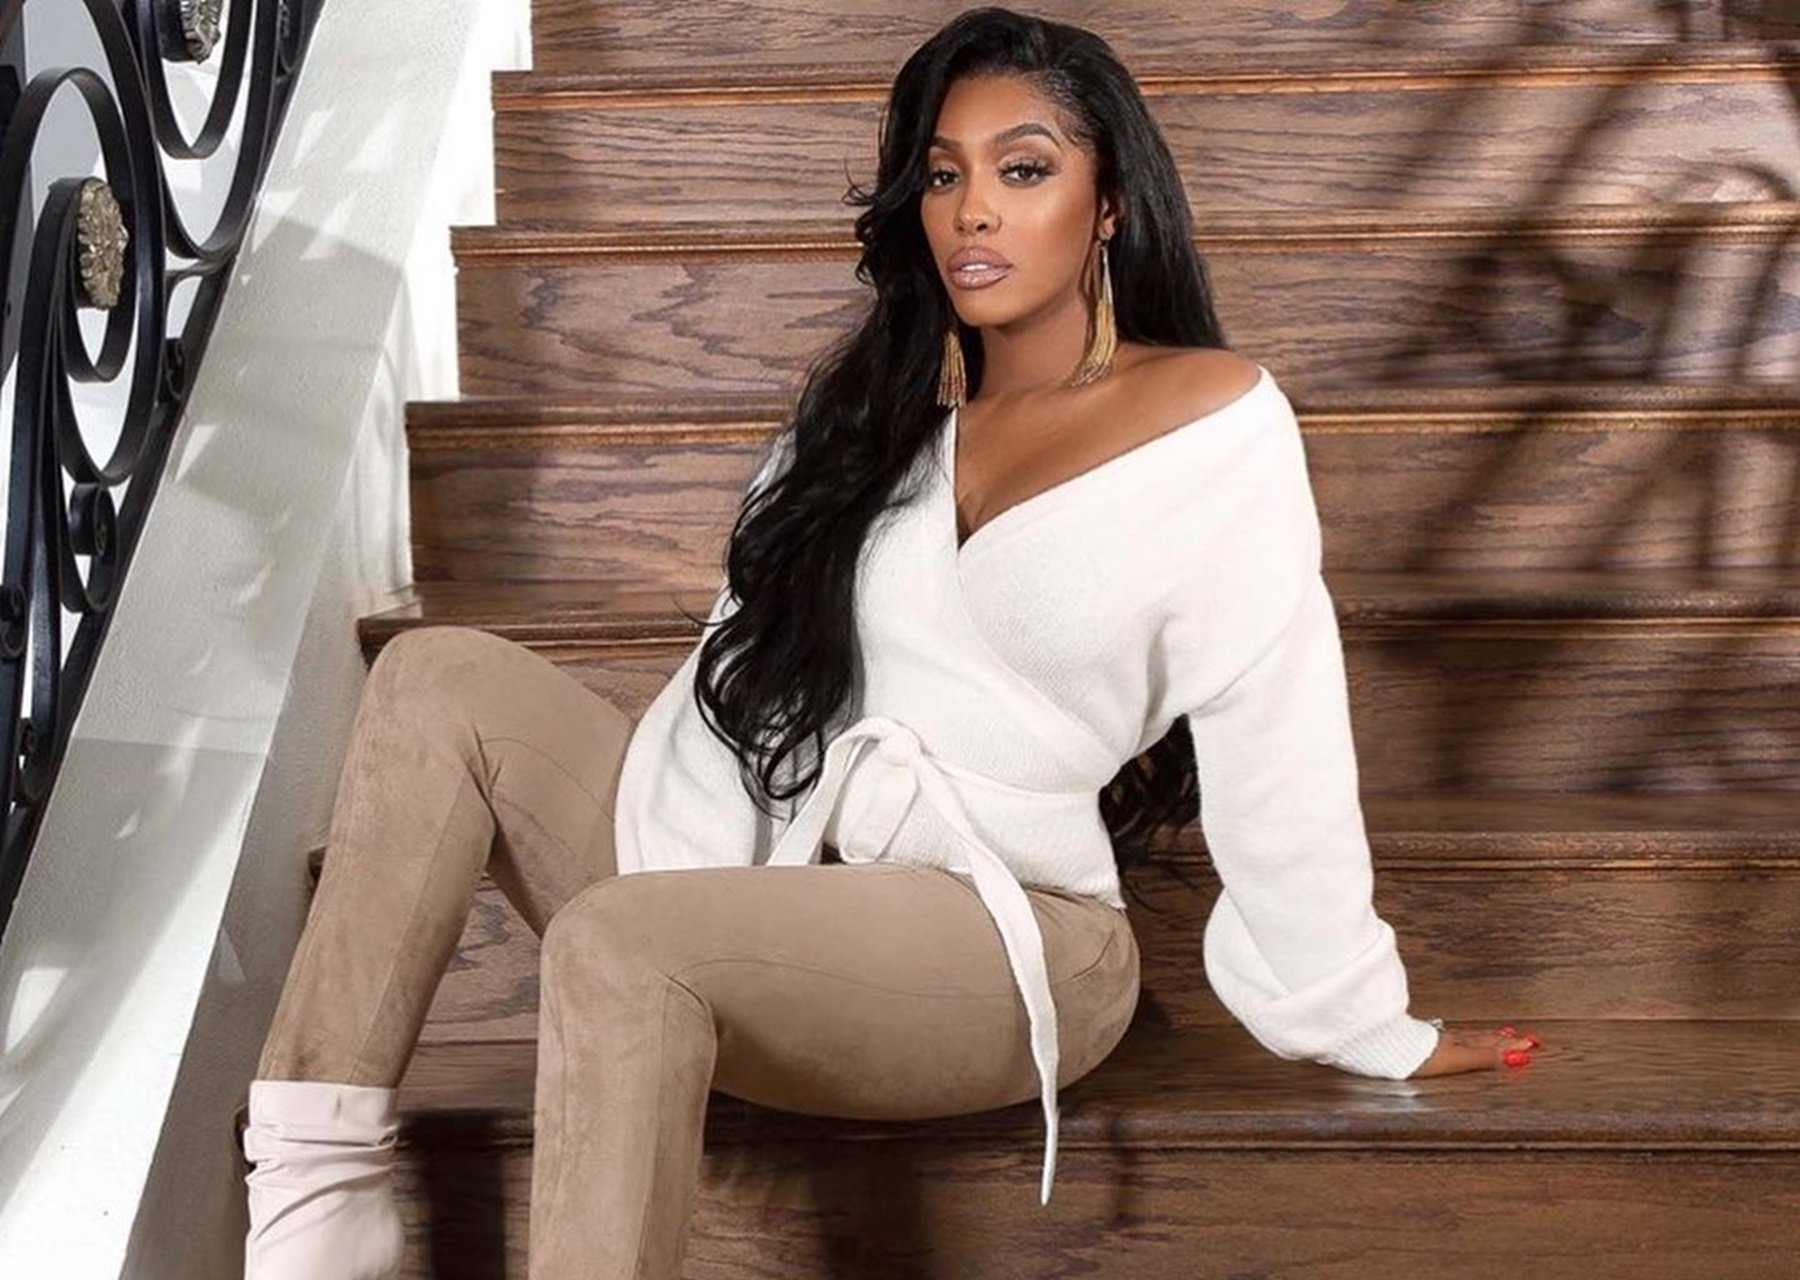 Porsha Williams And Her Pal, Monique Samuels, Looks Gorgeous In The Mexico Vacay